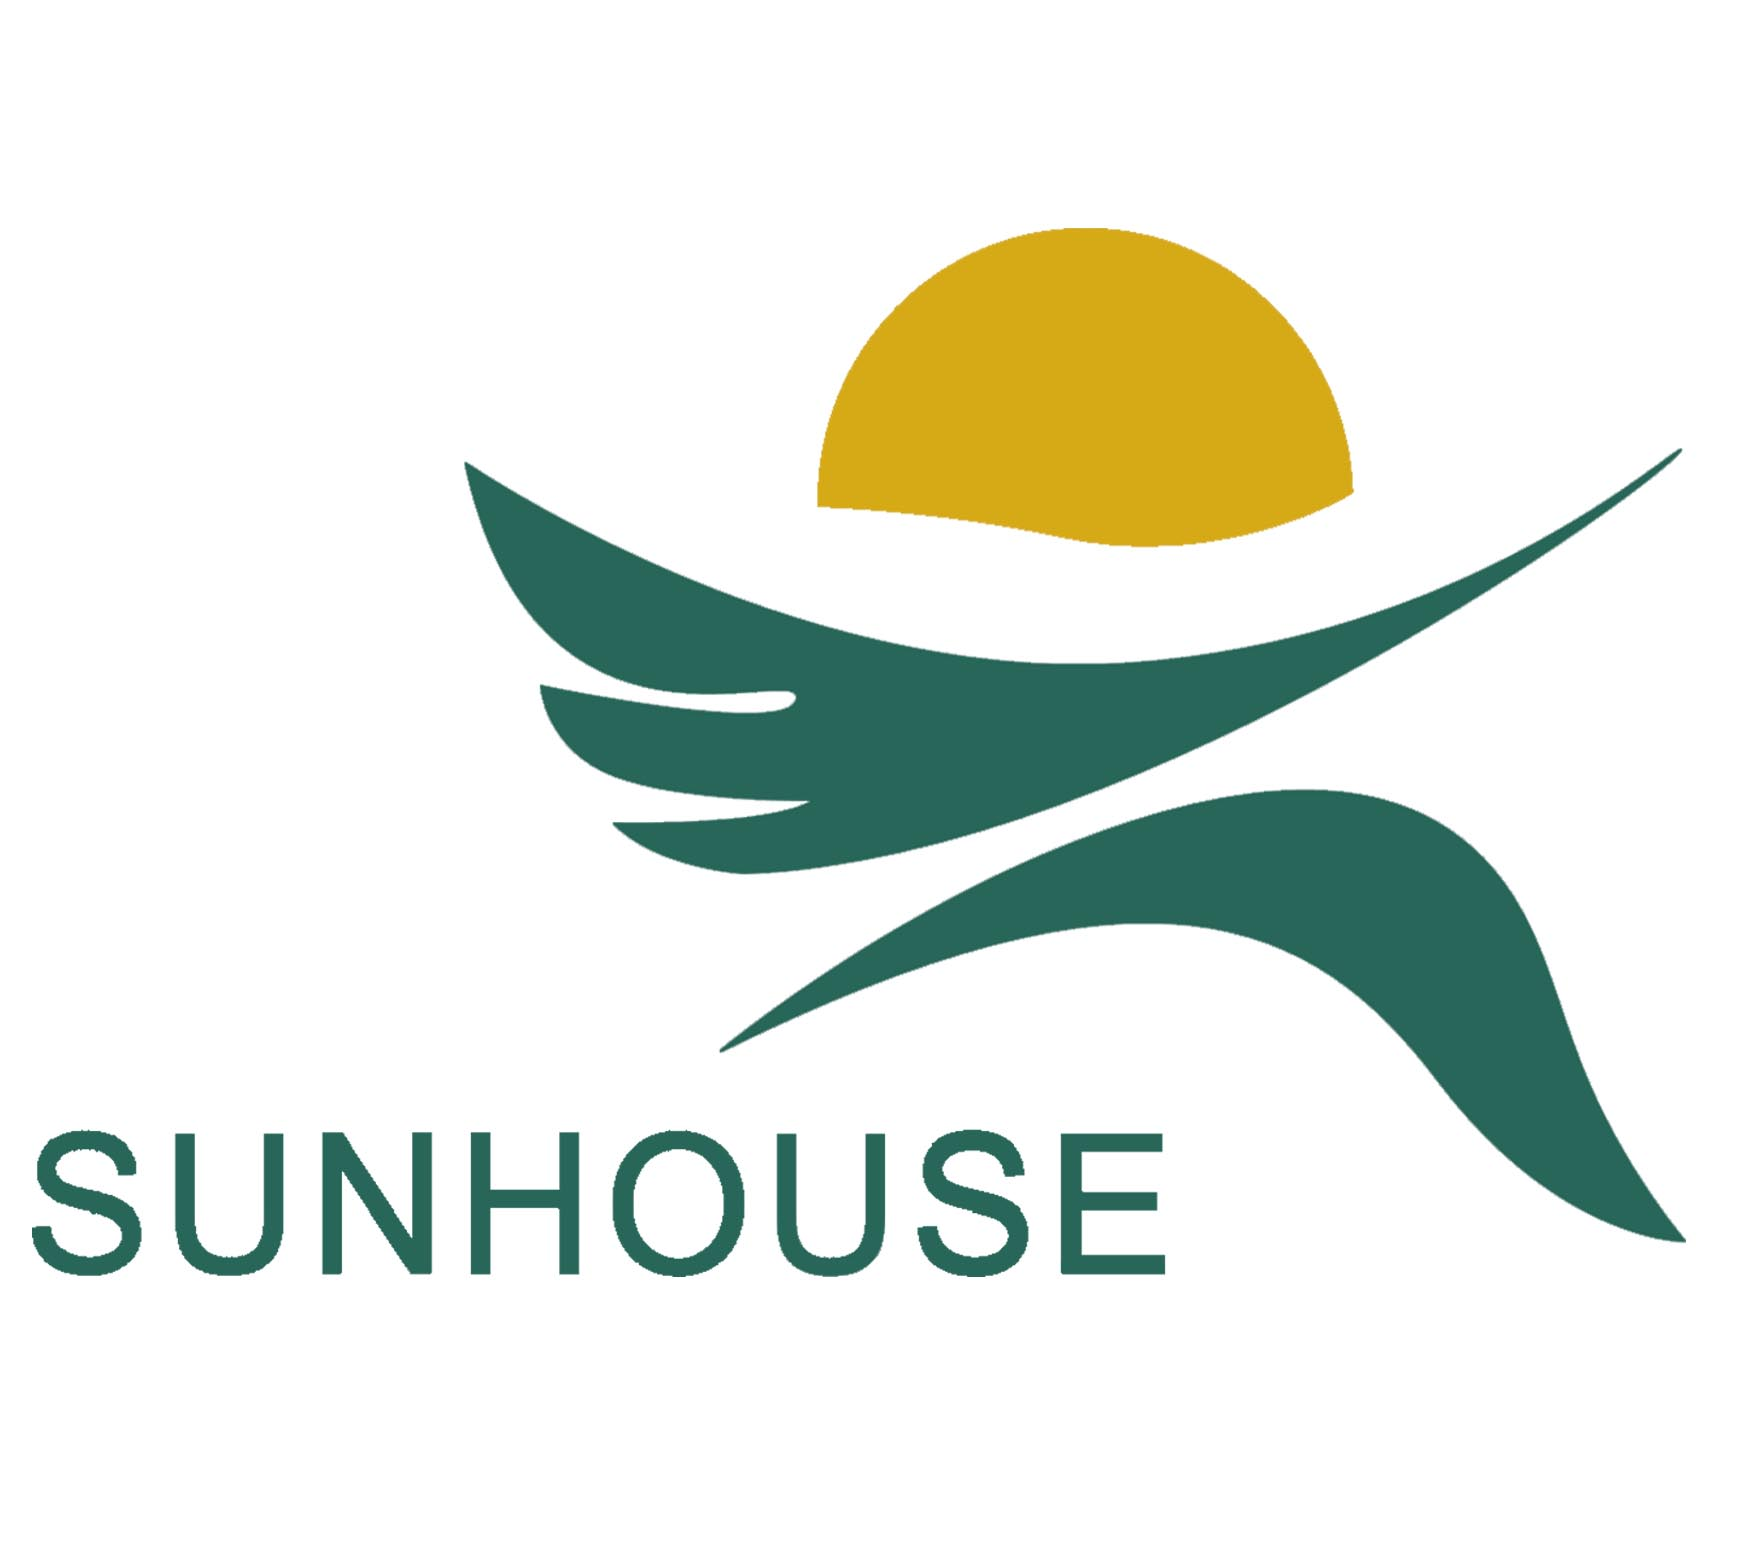 Anhui Sunhouse Bamboo and Wood Technology Company Limited